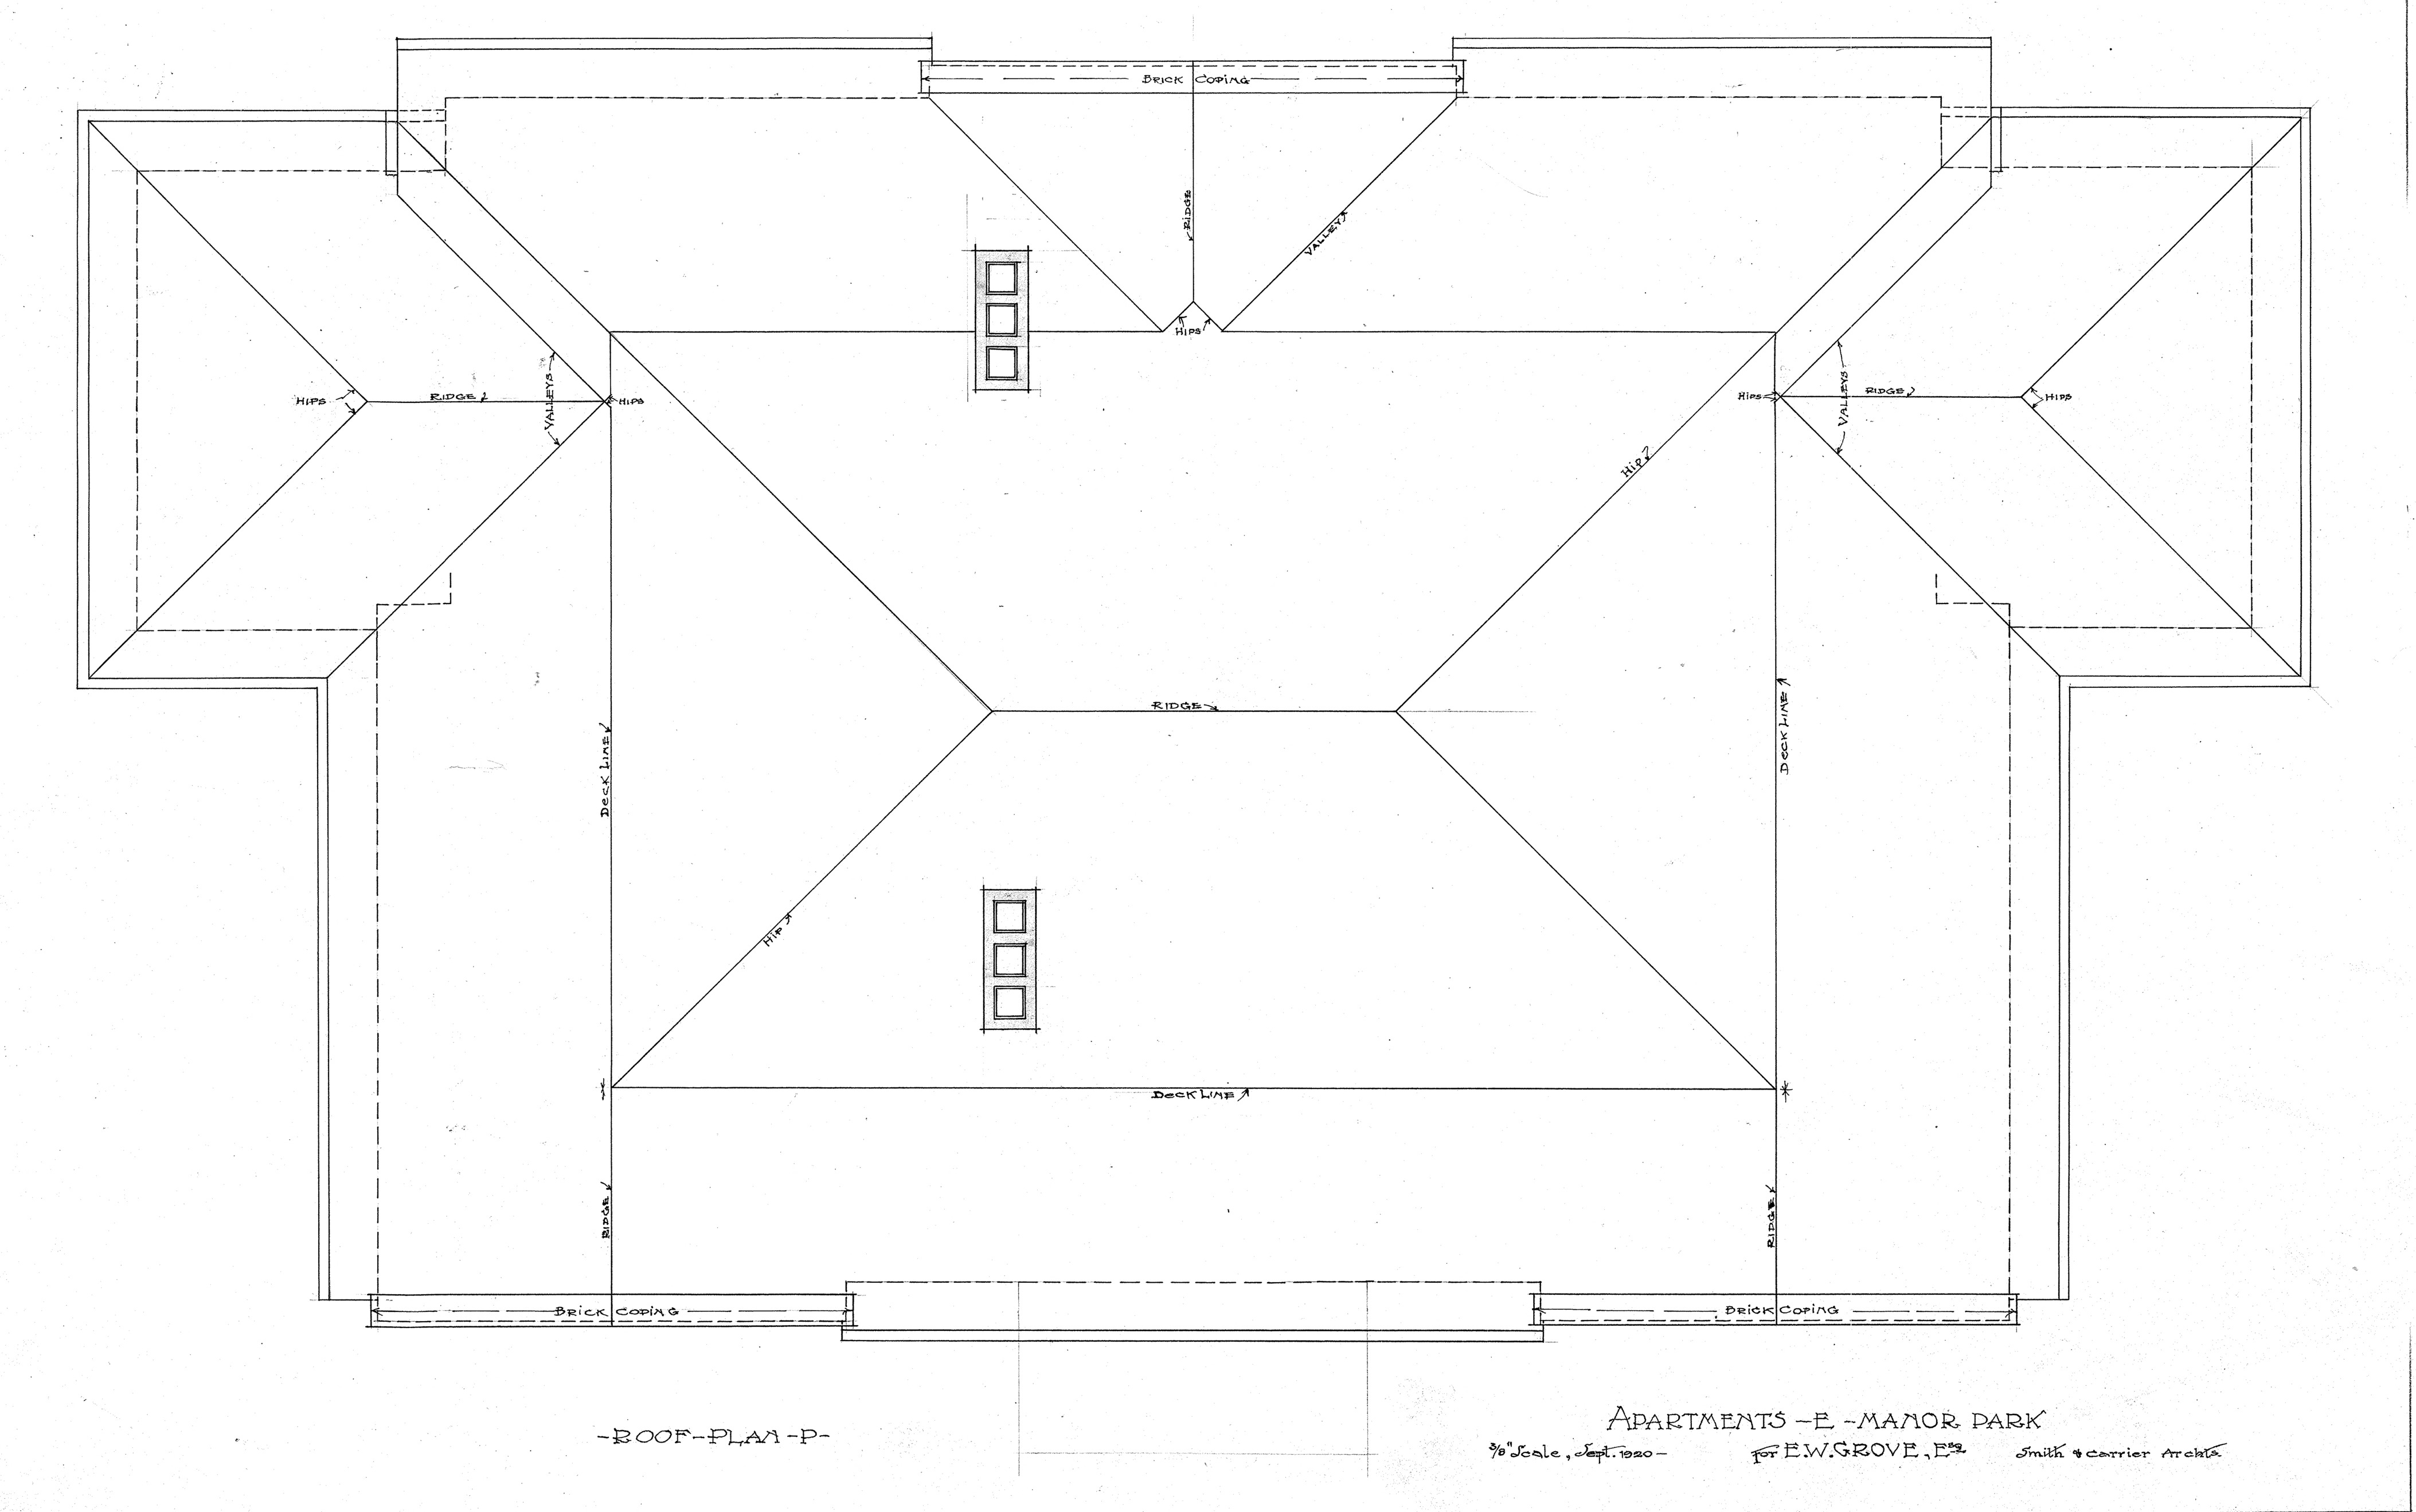 Apartment house albemarle park for e w grove roof plan for Roof plan drawing